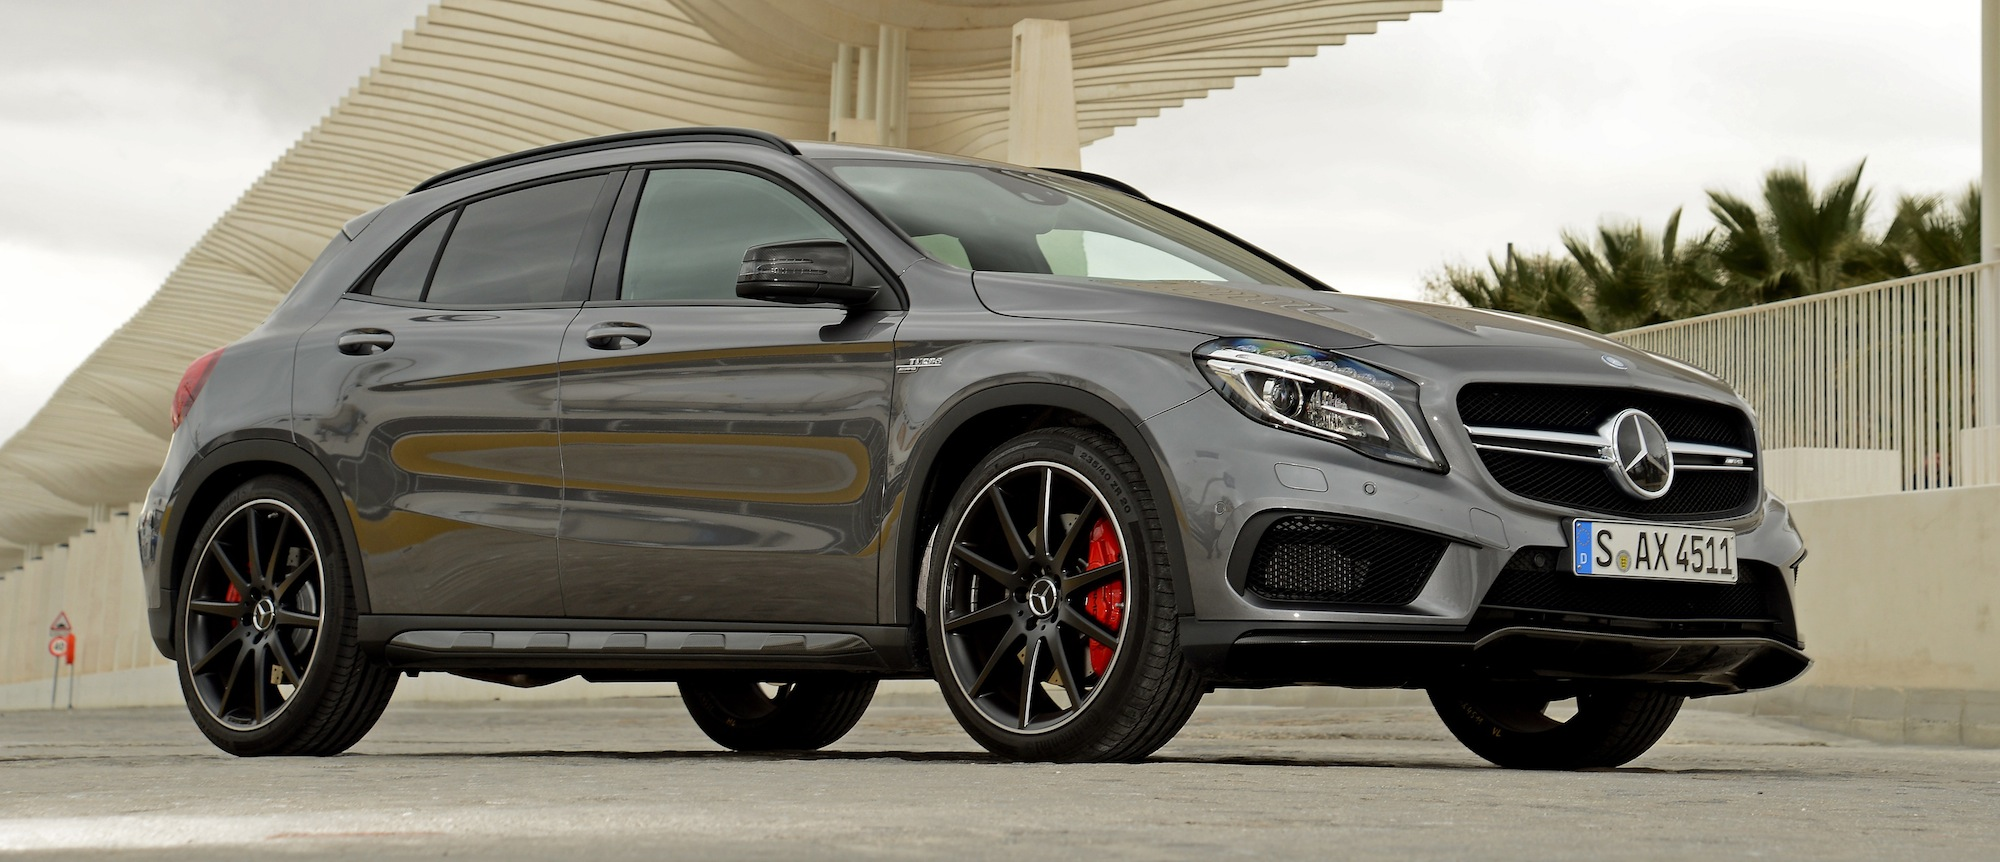 mercedes benz gla class review photos caradvice. Black Bedroom Furniture Sets. Home Design Ideas